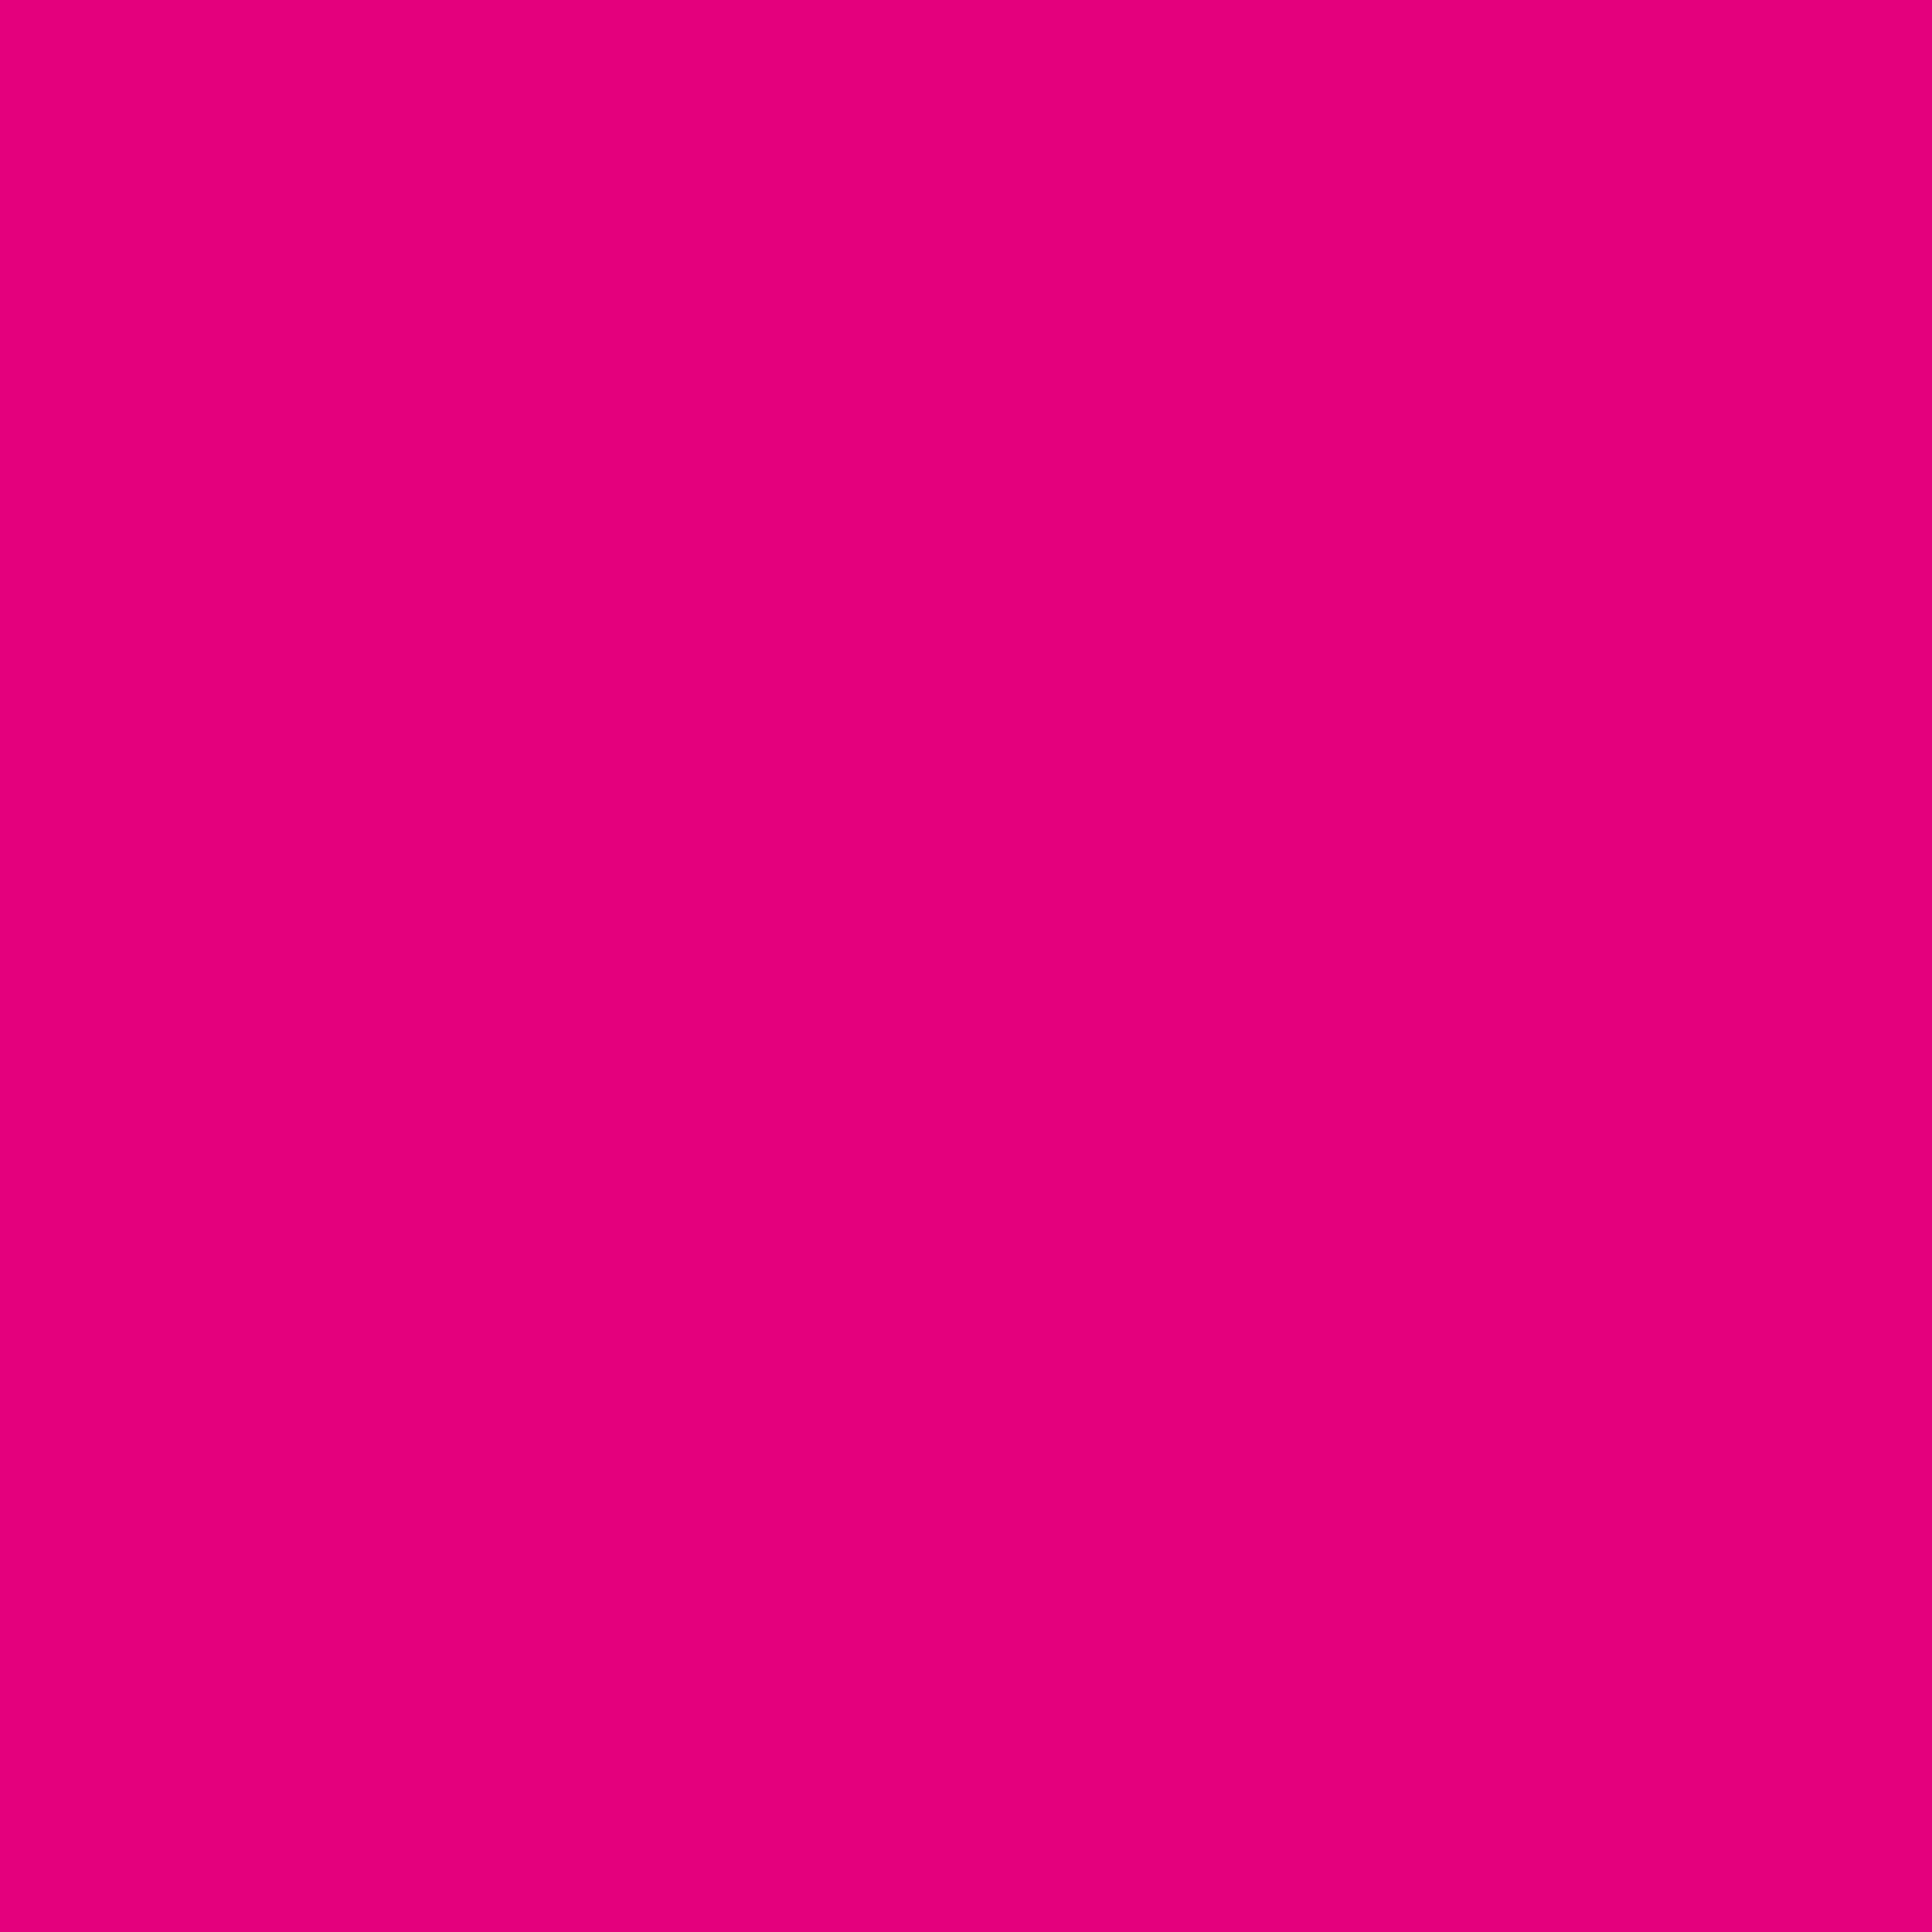 2048x2048 Mexican Pink Solid Color Background